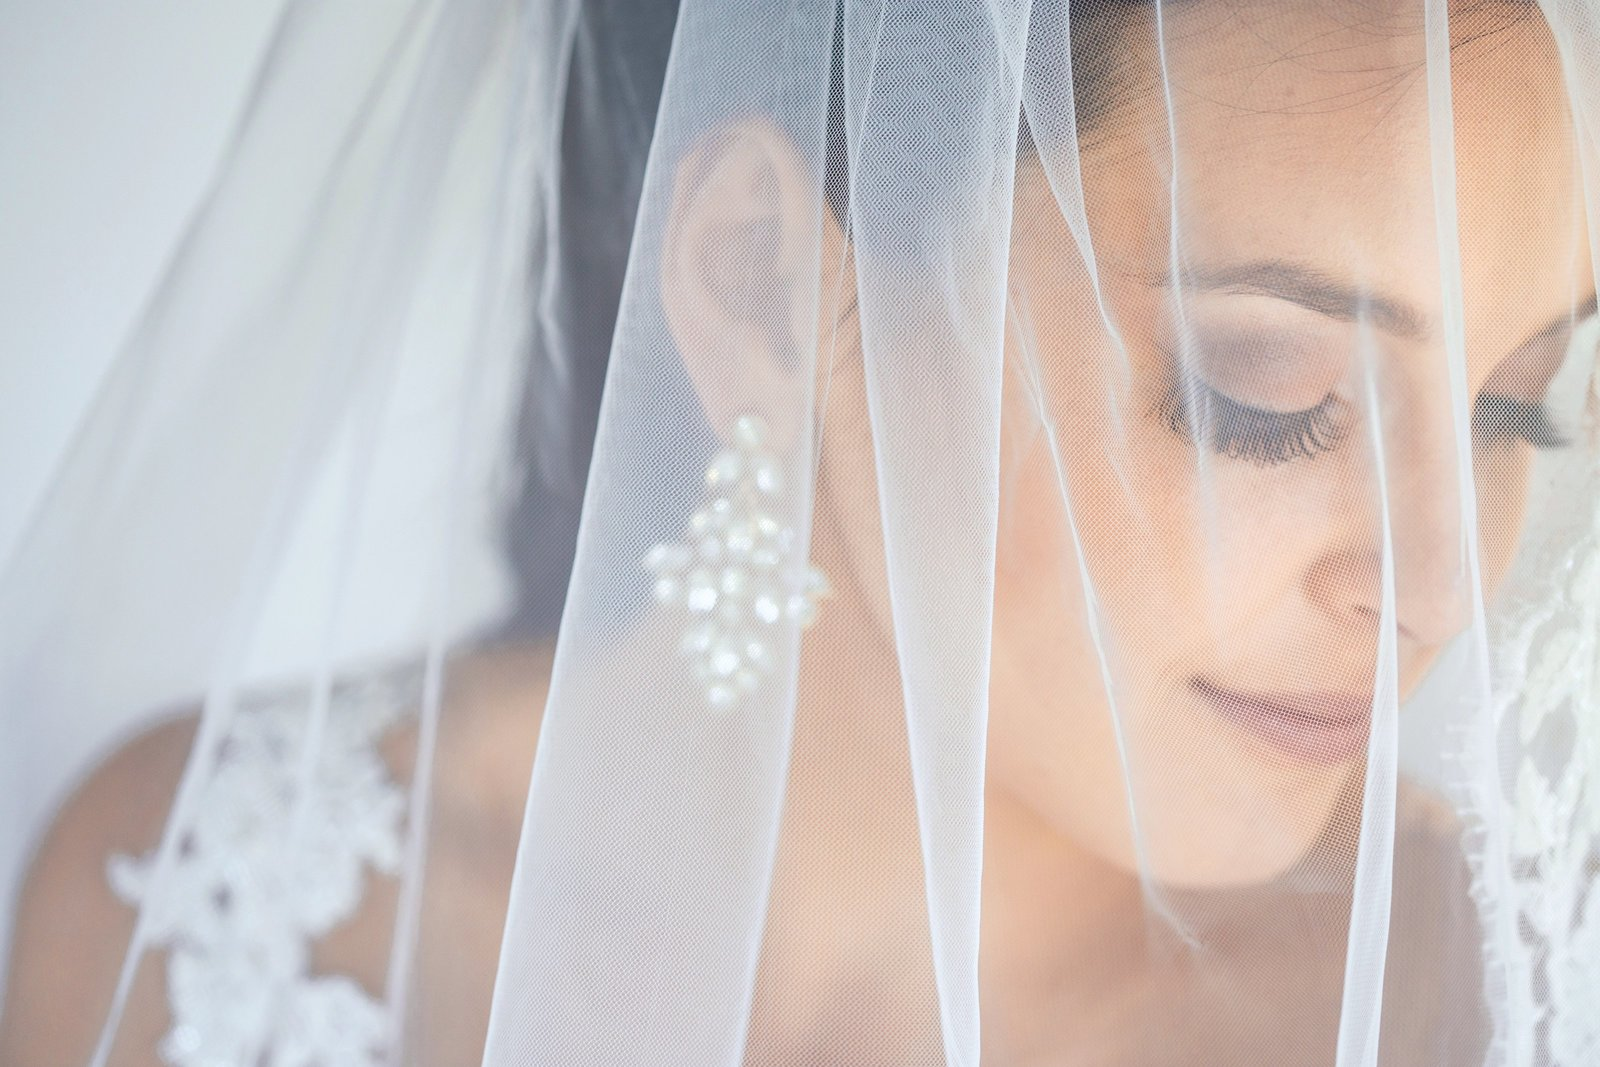 newhall mansion bride with wedding veil over face photo